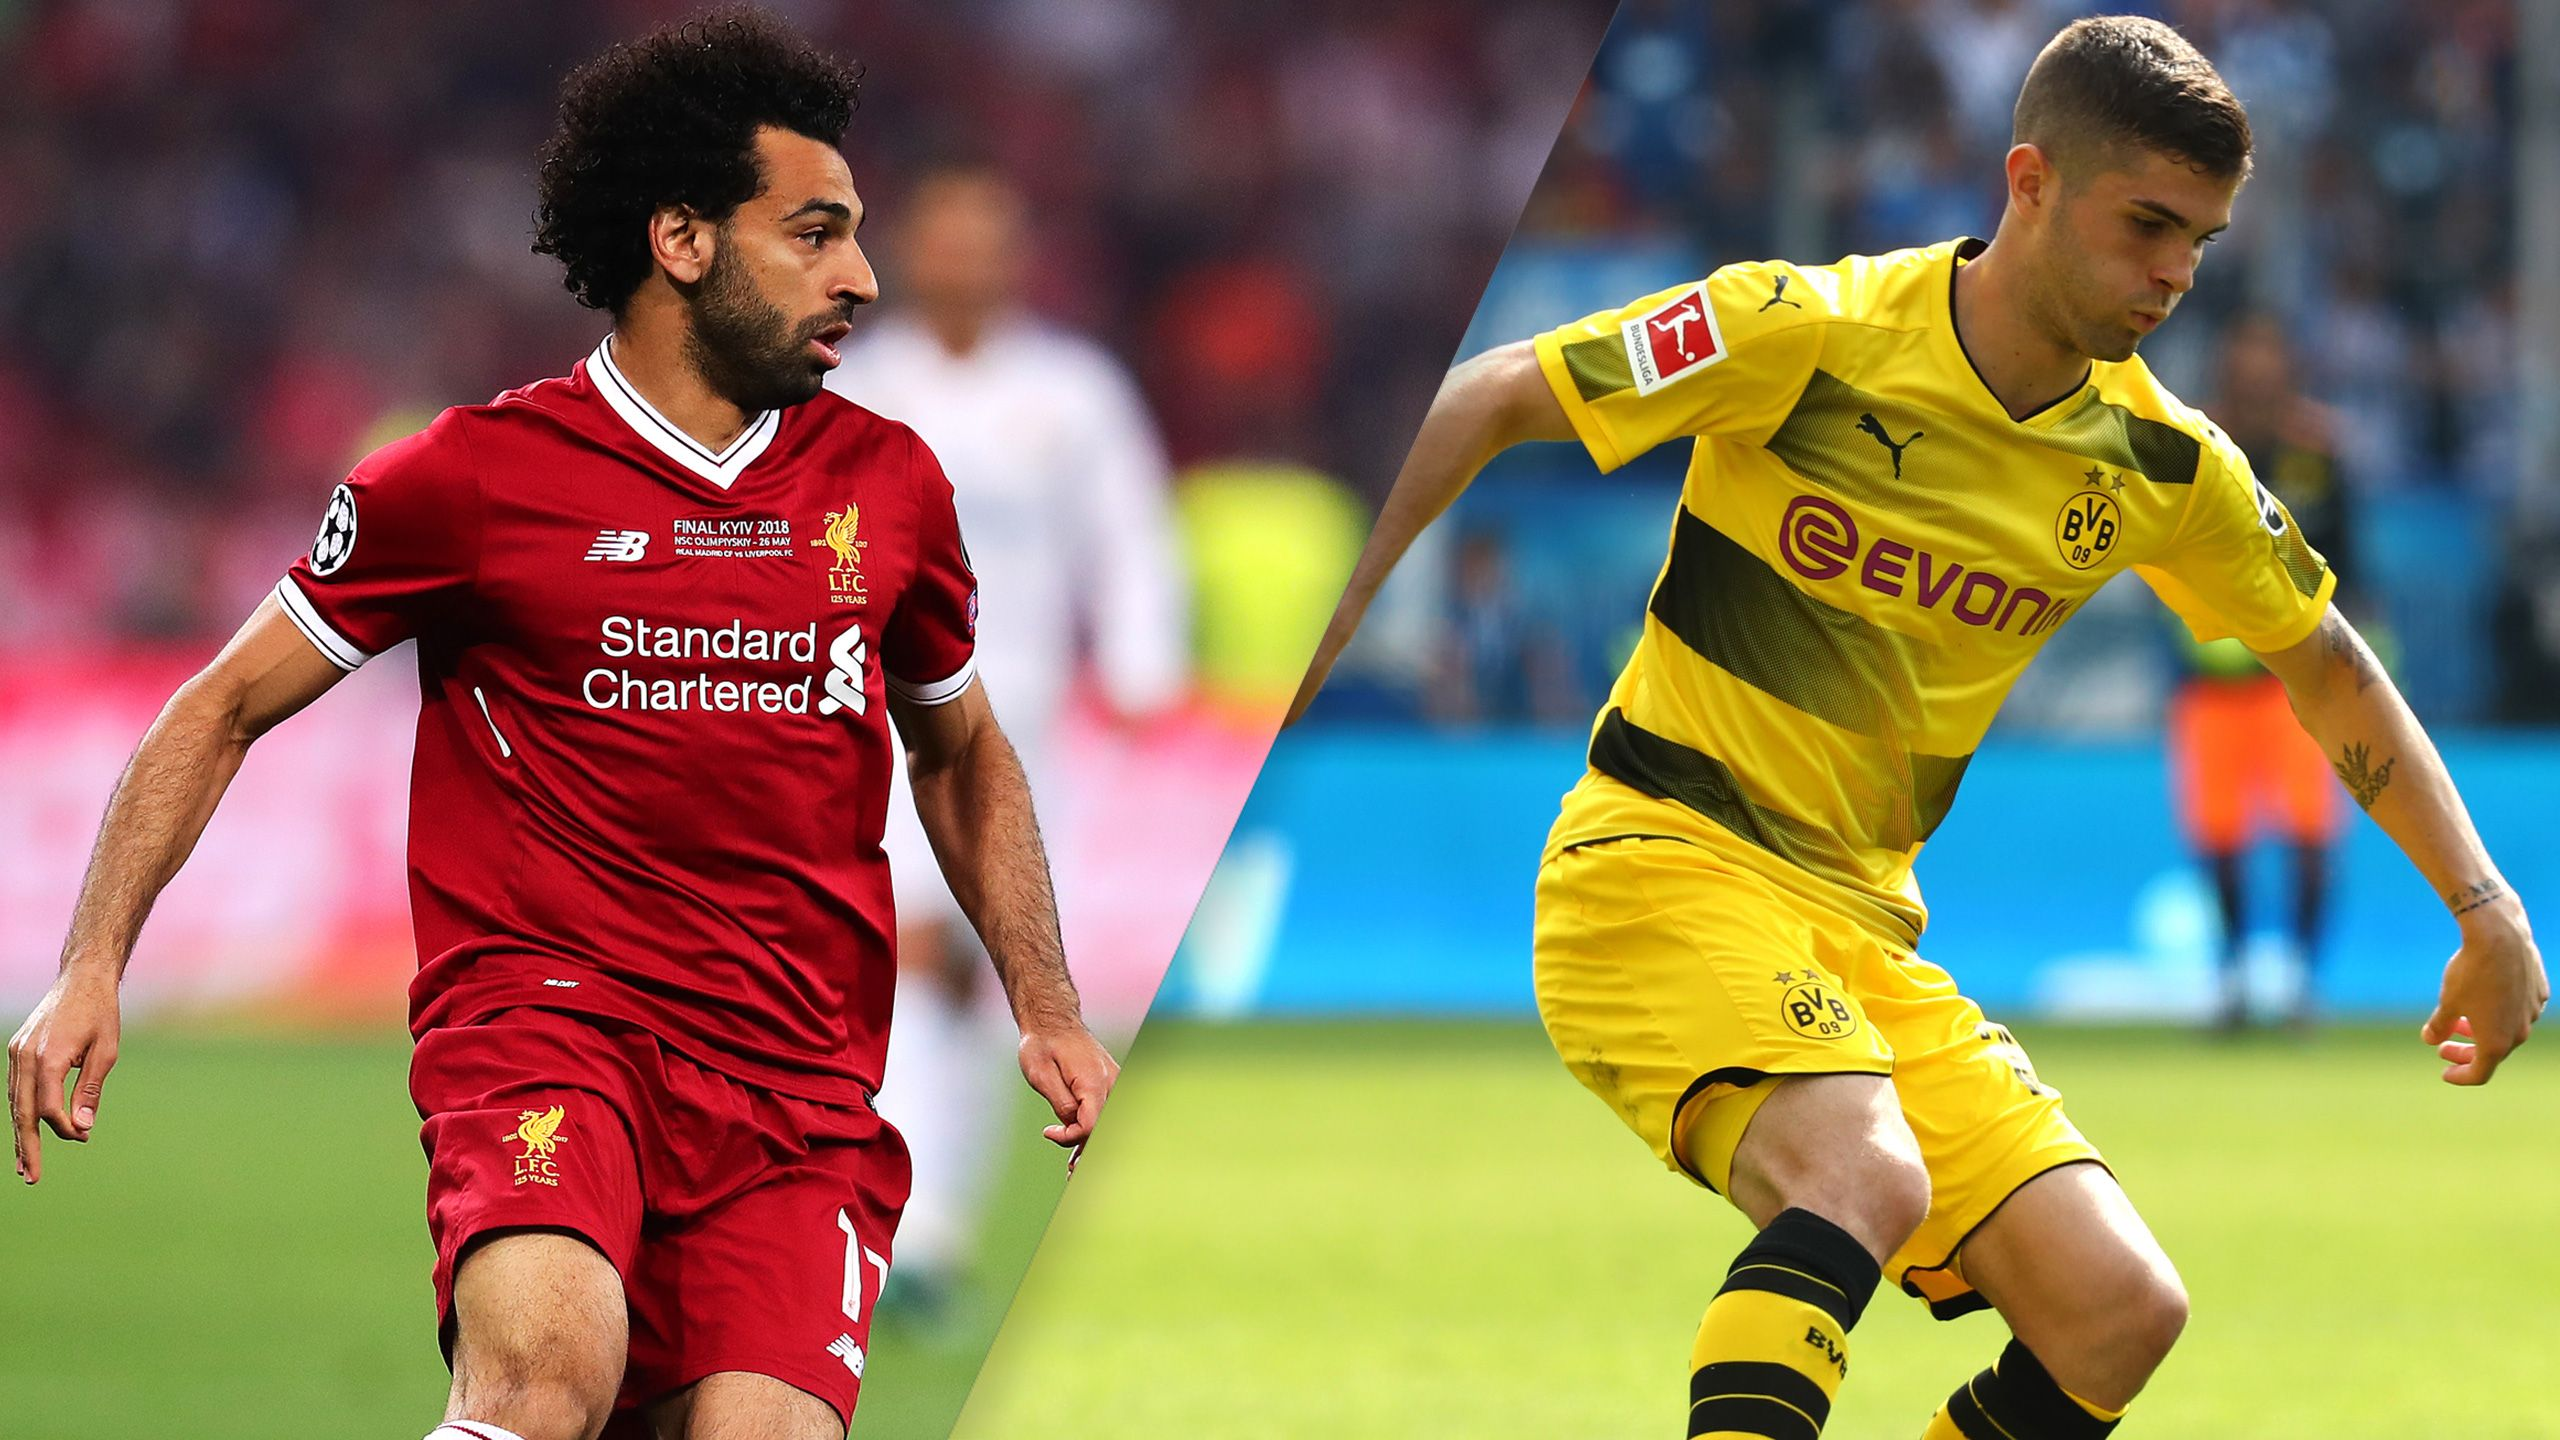 Liverpool vs. Borussia Dortmund (International Champions Cup)